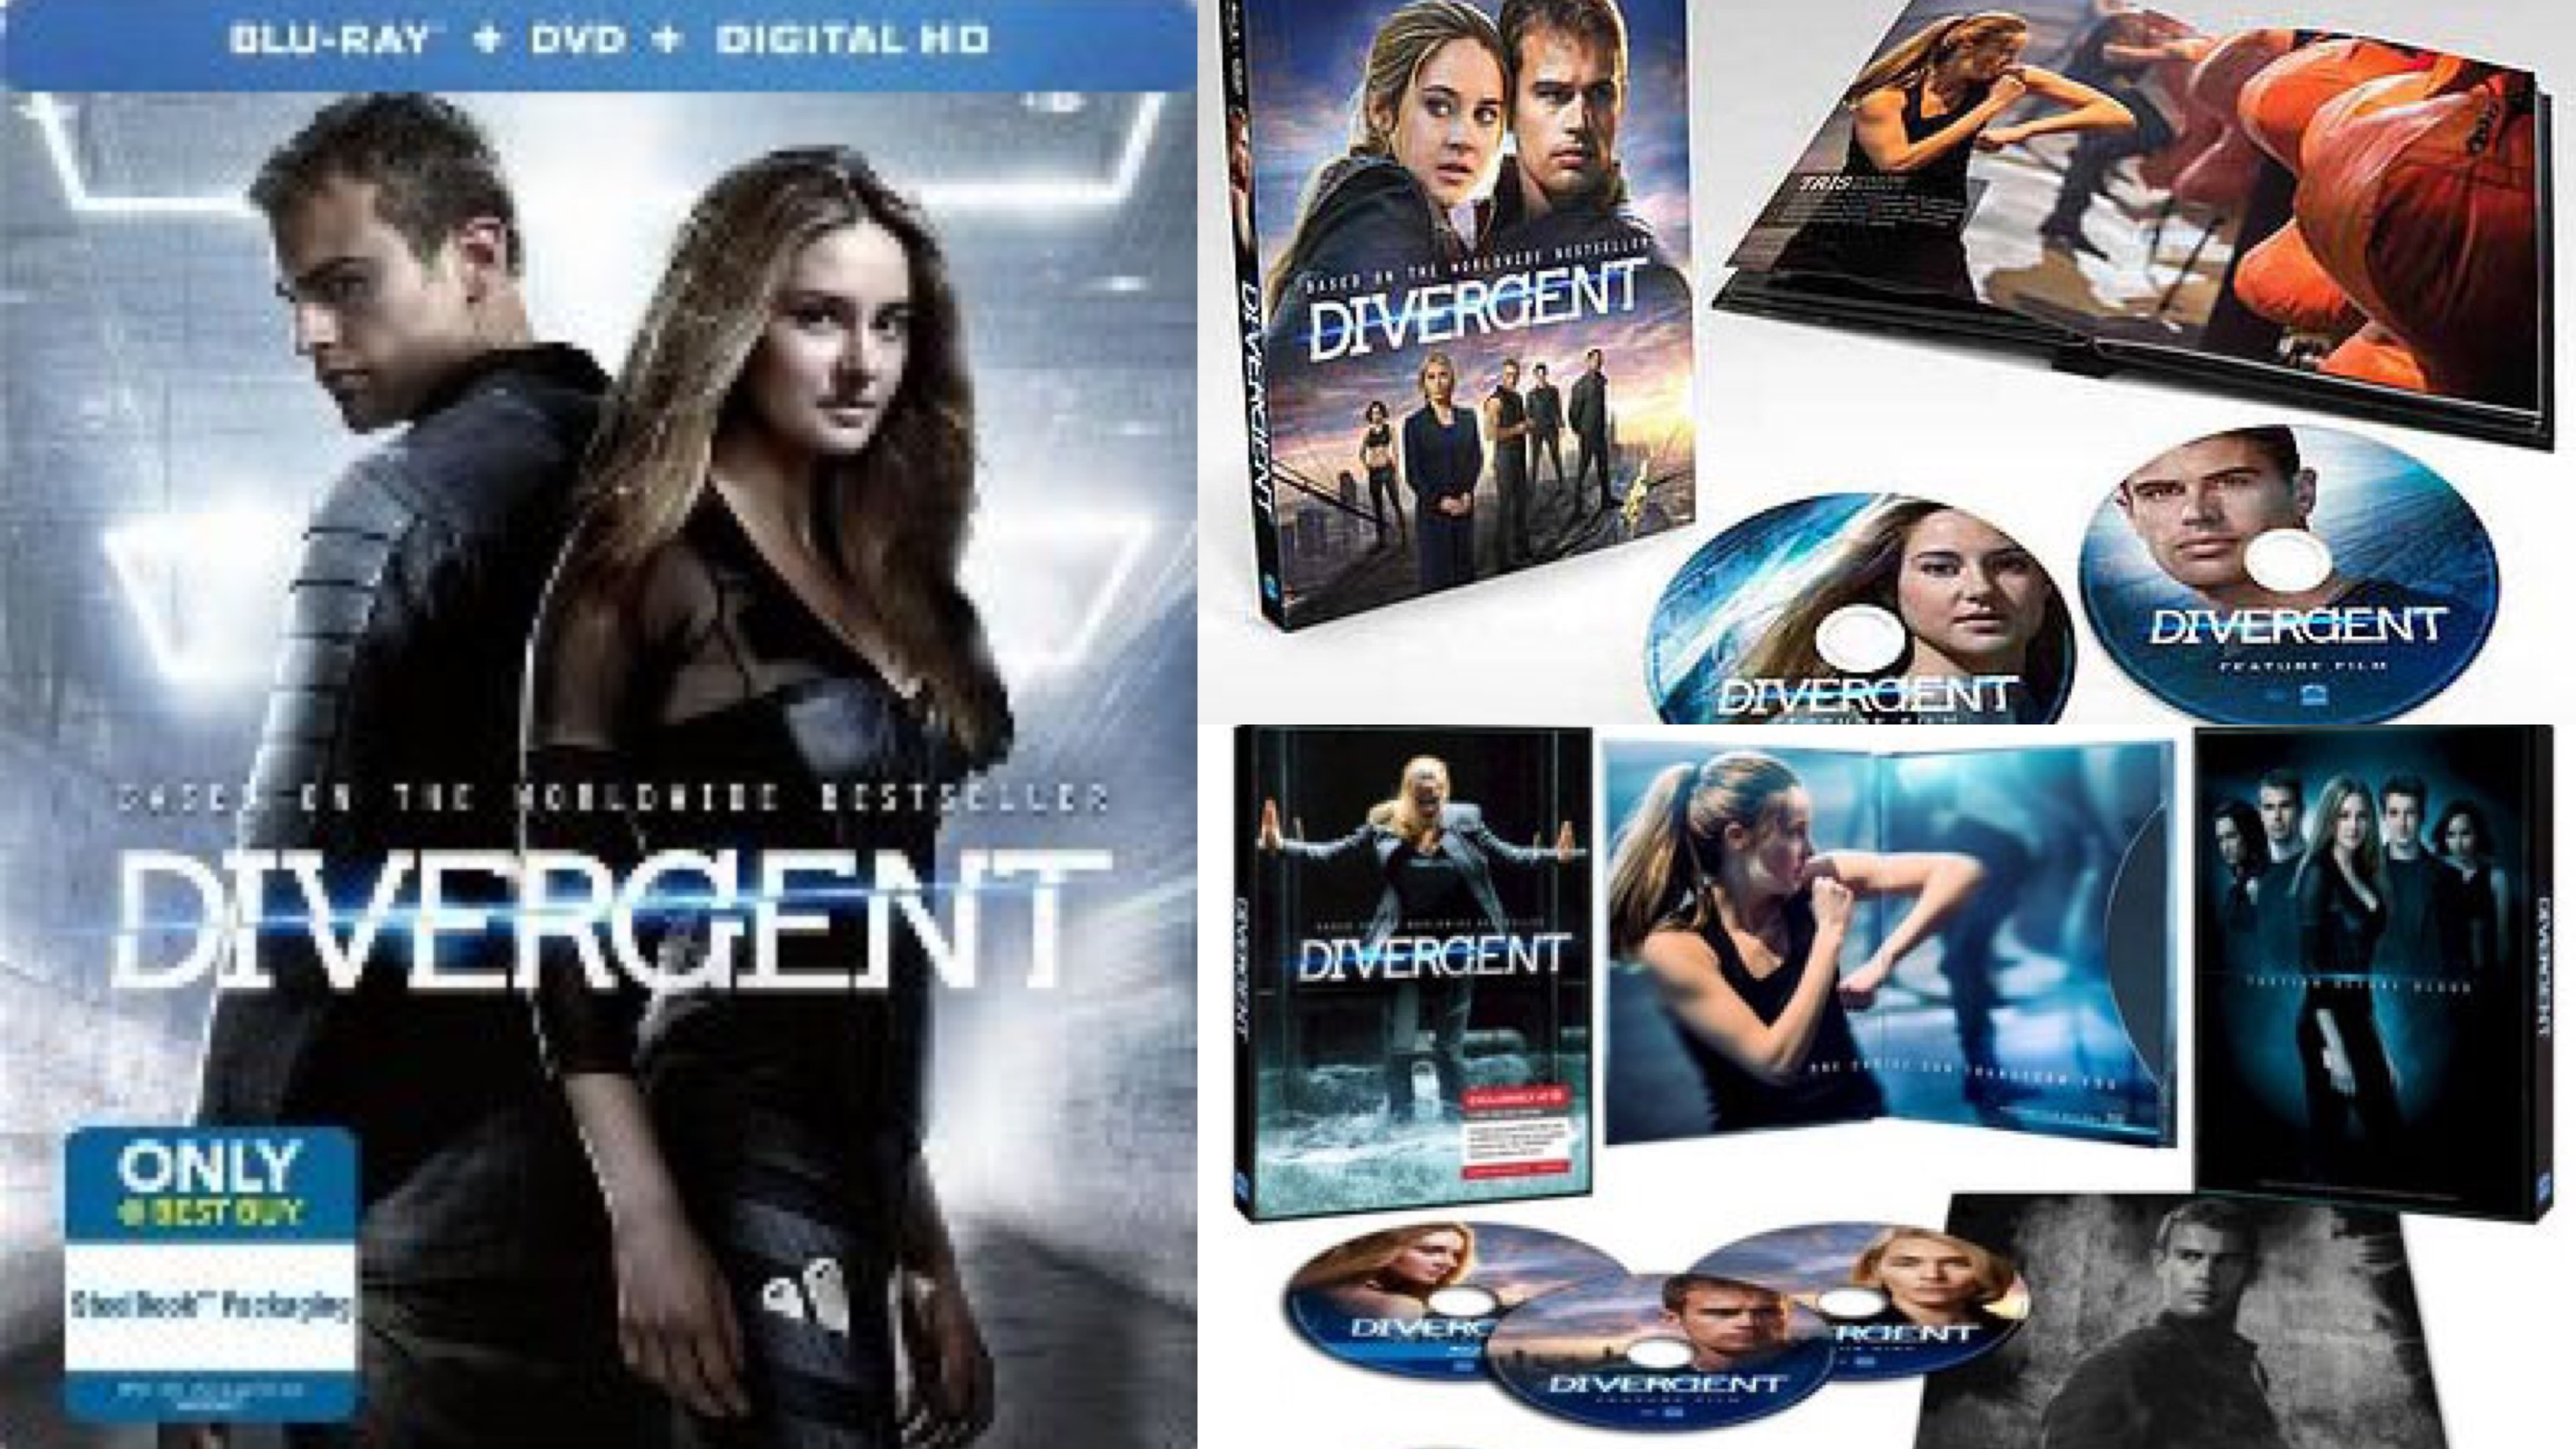 Guide: 'Divergent' Blu-ray Exclusive Releases From Retailers | F